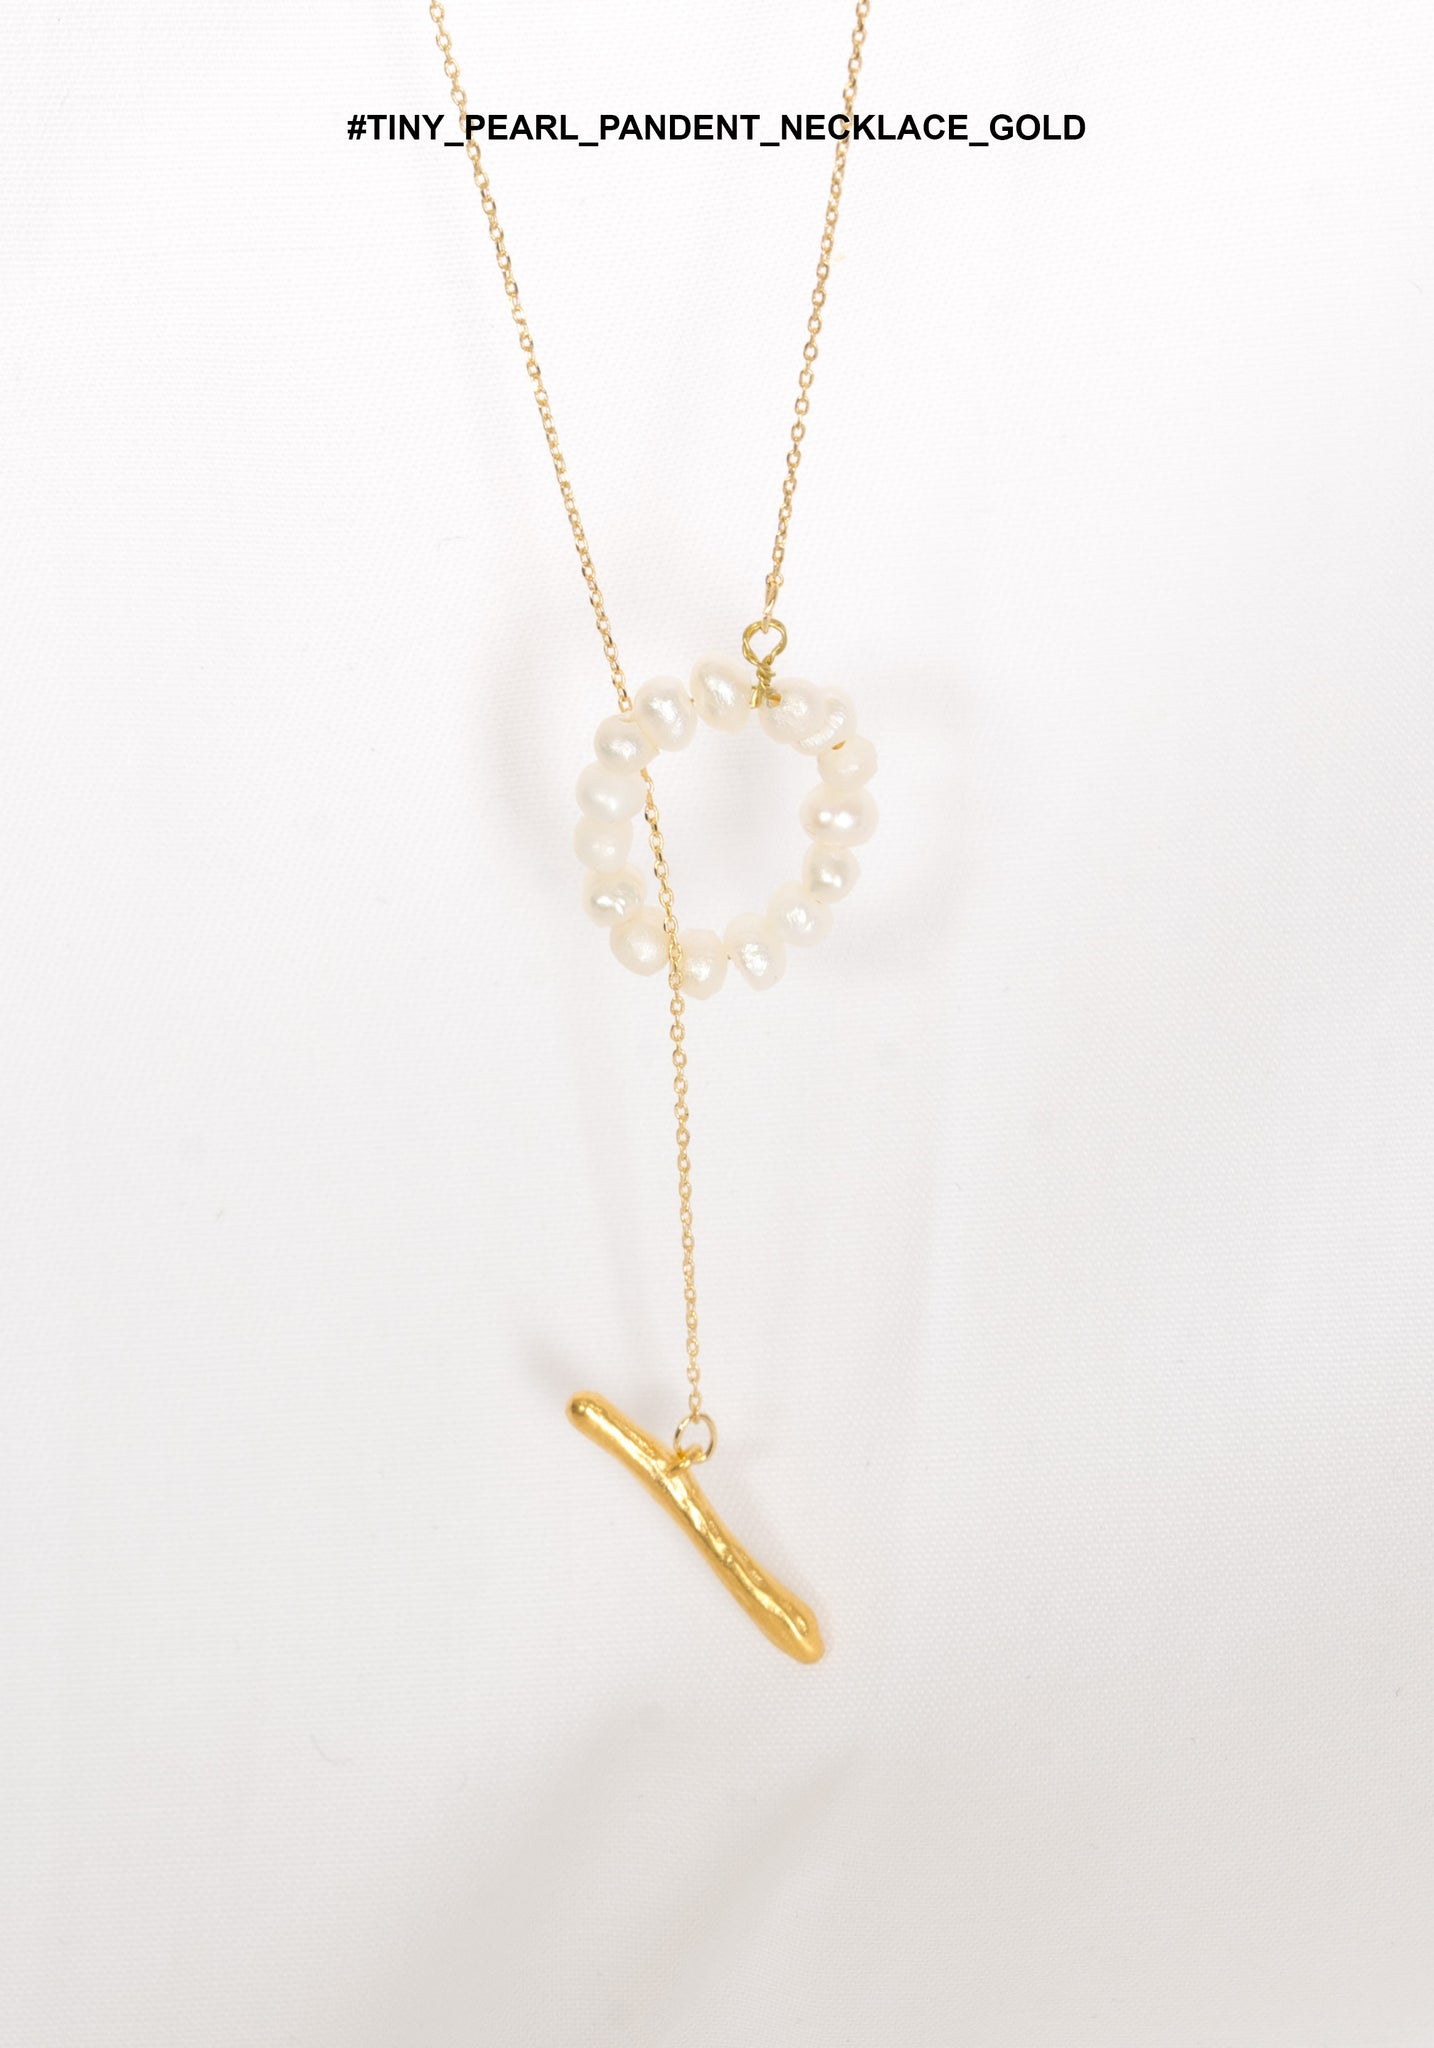 Tiny Pearl Pandent Necklace Gold - whoami